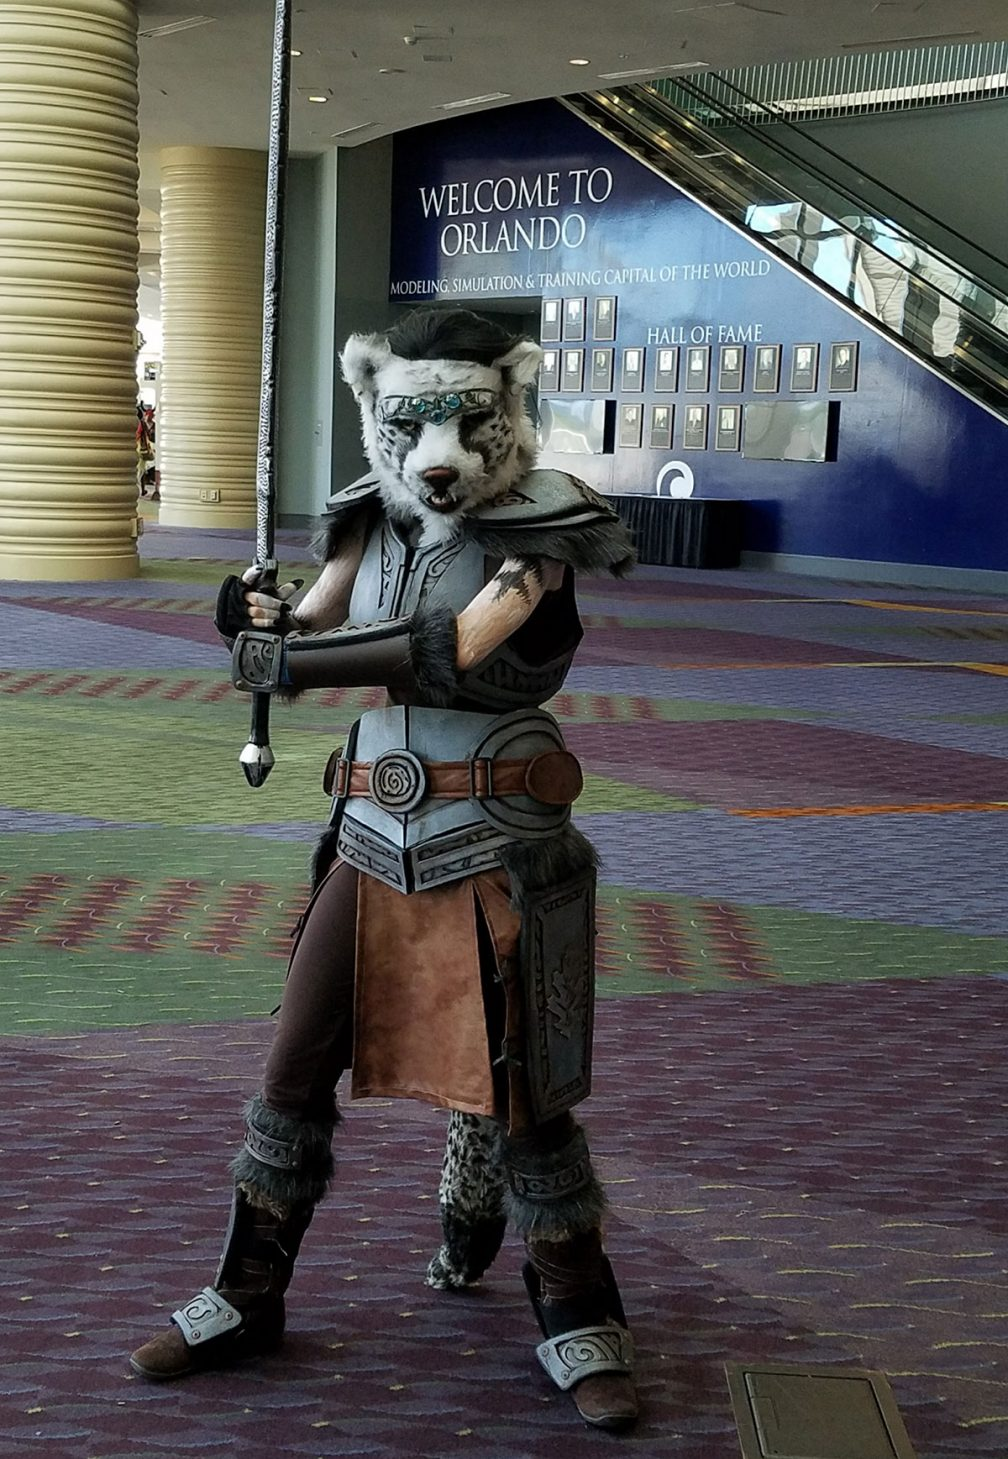 Phew! All done and at MegaCon. Our Khajiit was very popular!